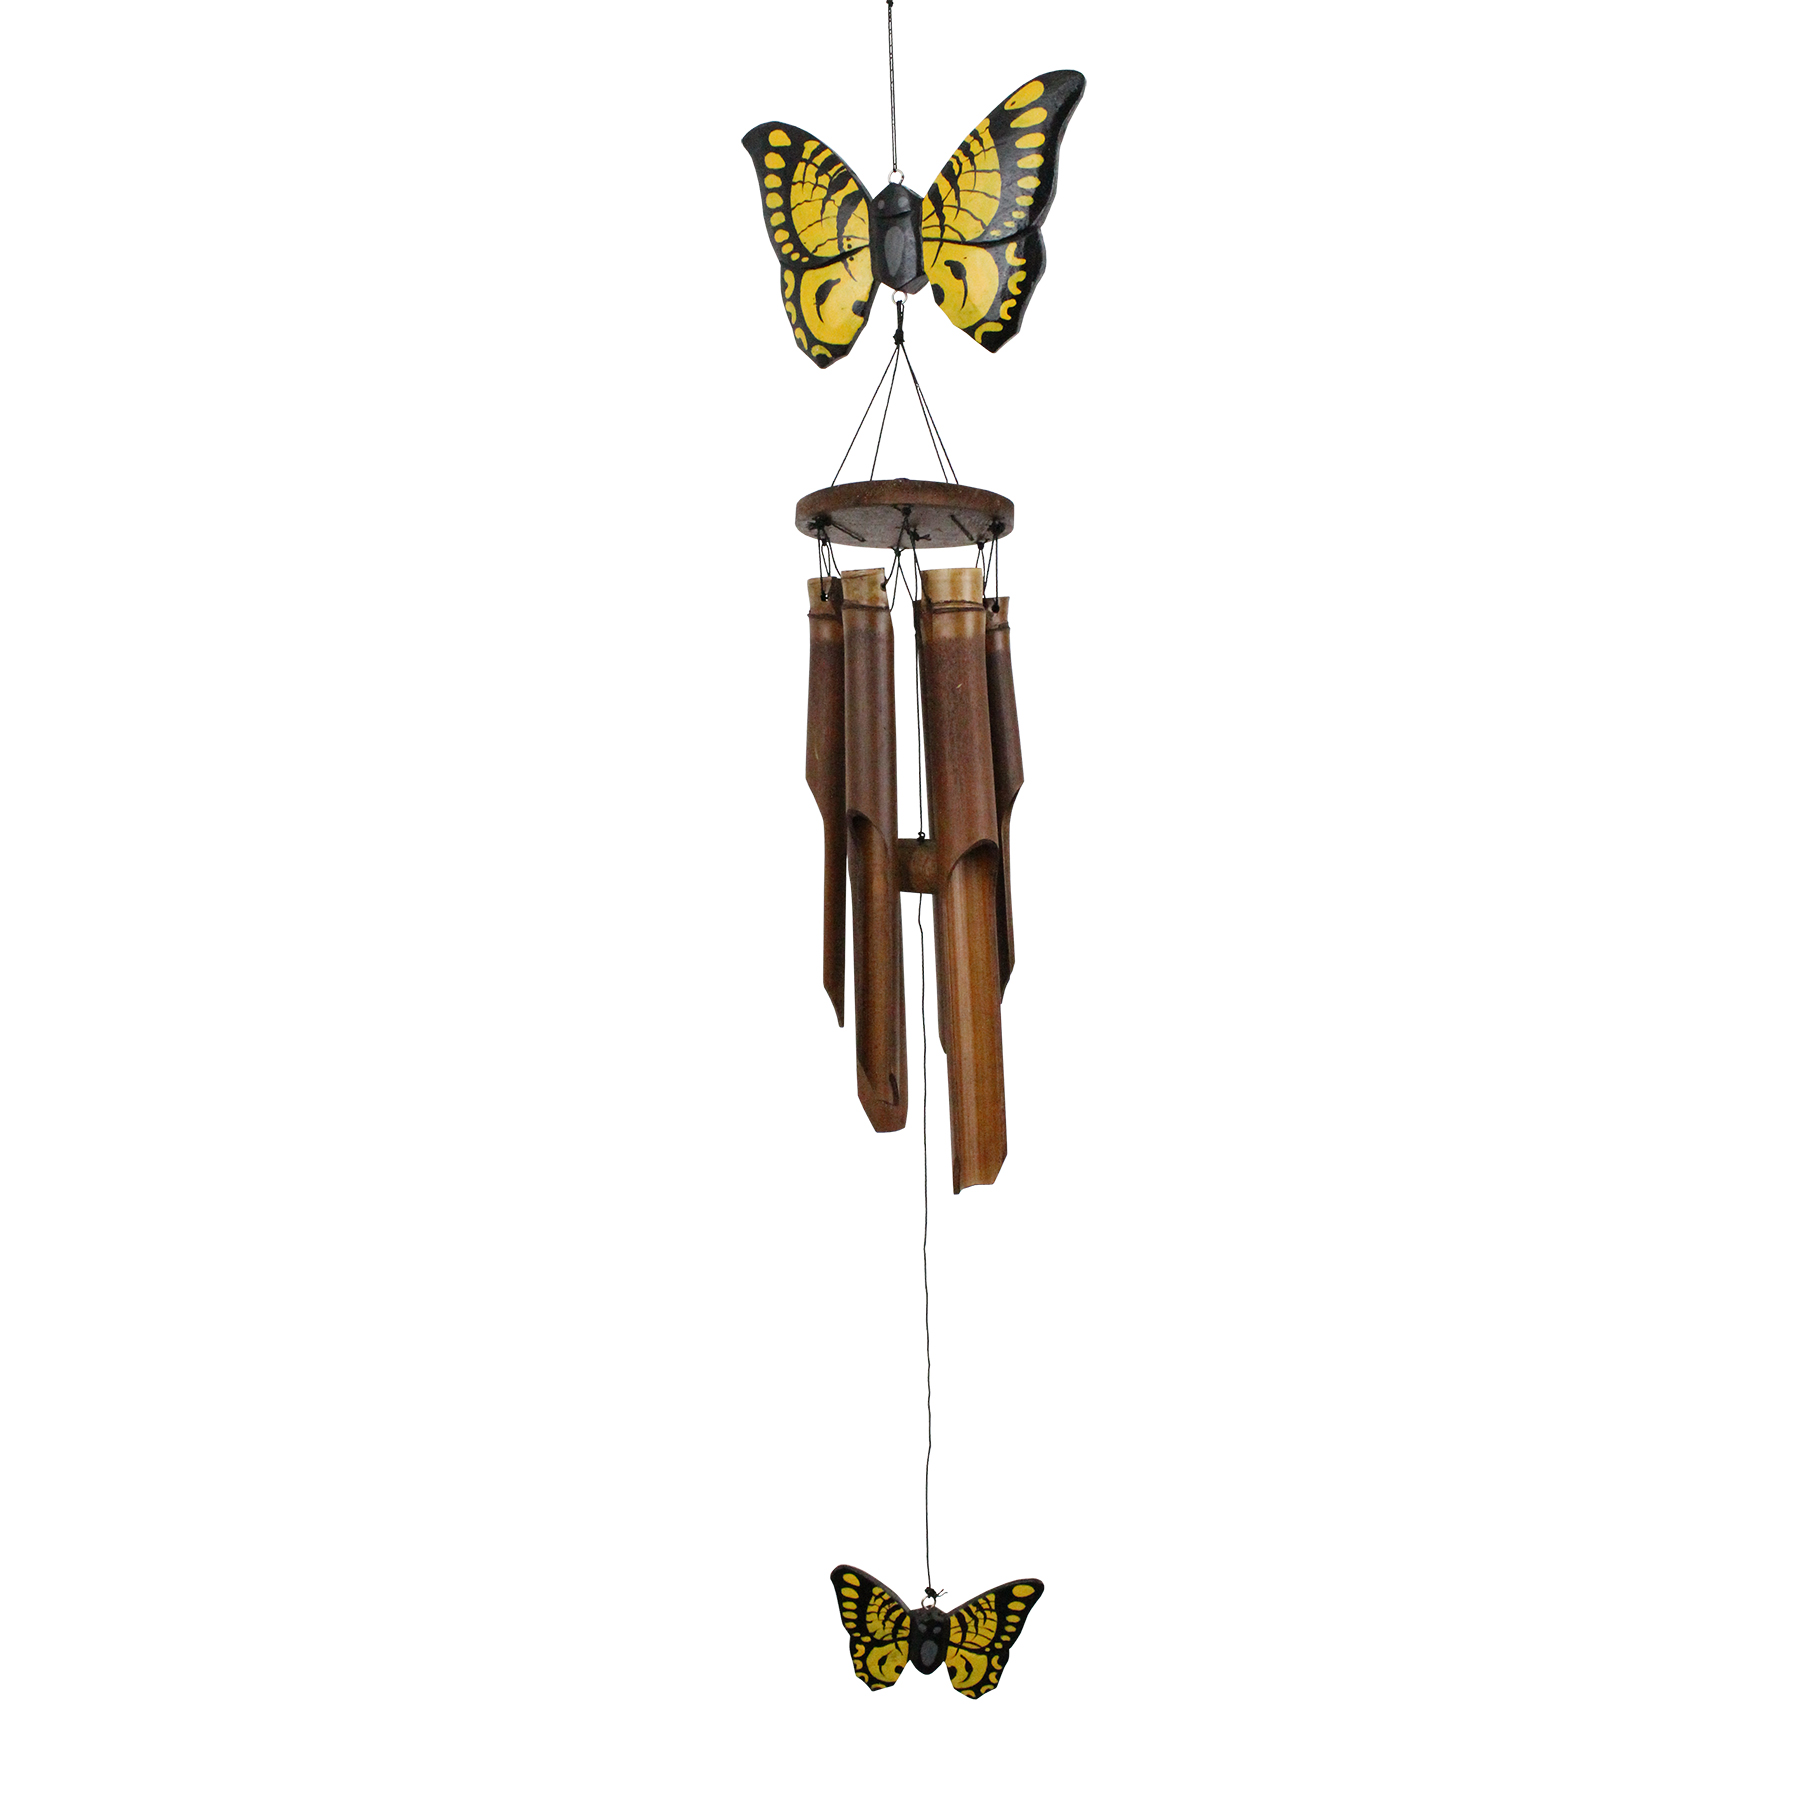 186 - Yellow Butterfly Bamboo Wind Chime